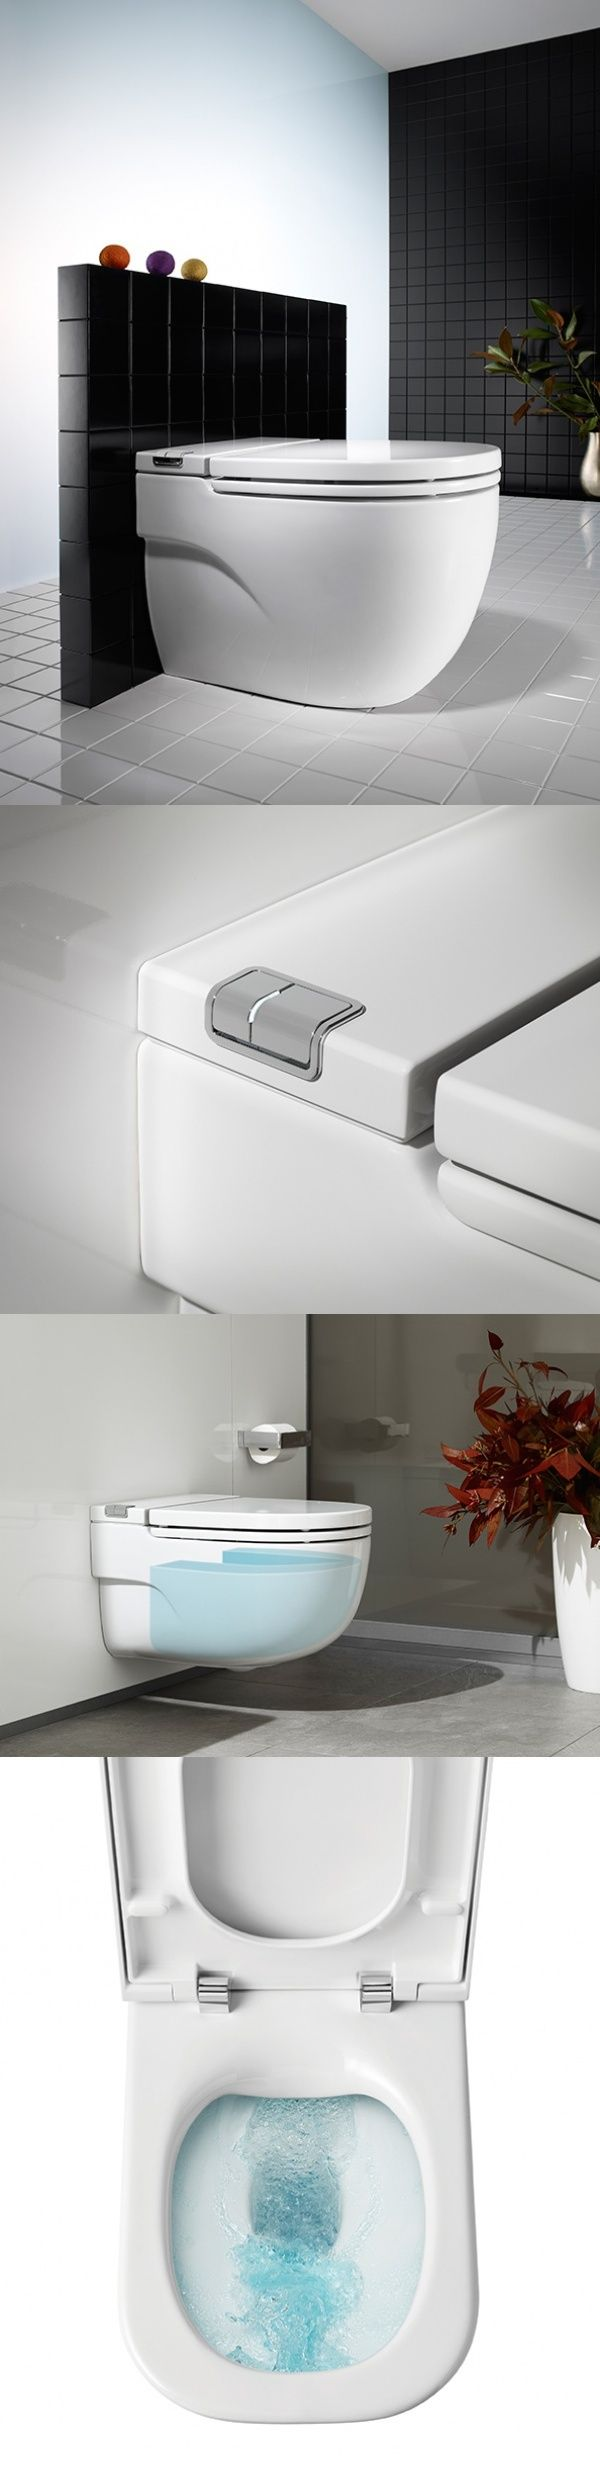 Who doesn't detest #cleaning the #toilet? Yuck. Imagine if it could clean itself. Heaven! The Gap Rimless is a self-cleaning toilet that features an innovative rimless pan designed as a continuous surface free of edges and angles, meaning dirt is quickly removed rather than accumulating in grooves or gaps. Flushing from a single point, The Gap Rimless literally cleans itself, with water circulating along the inner perimeter and moving in a circular motion toward the lower outlet. All this…